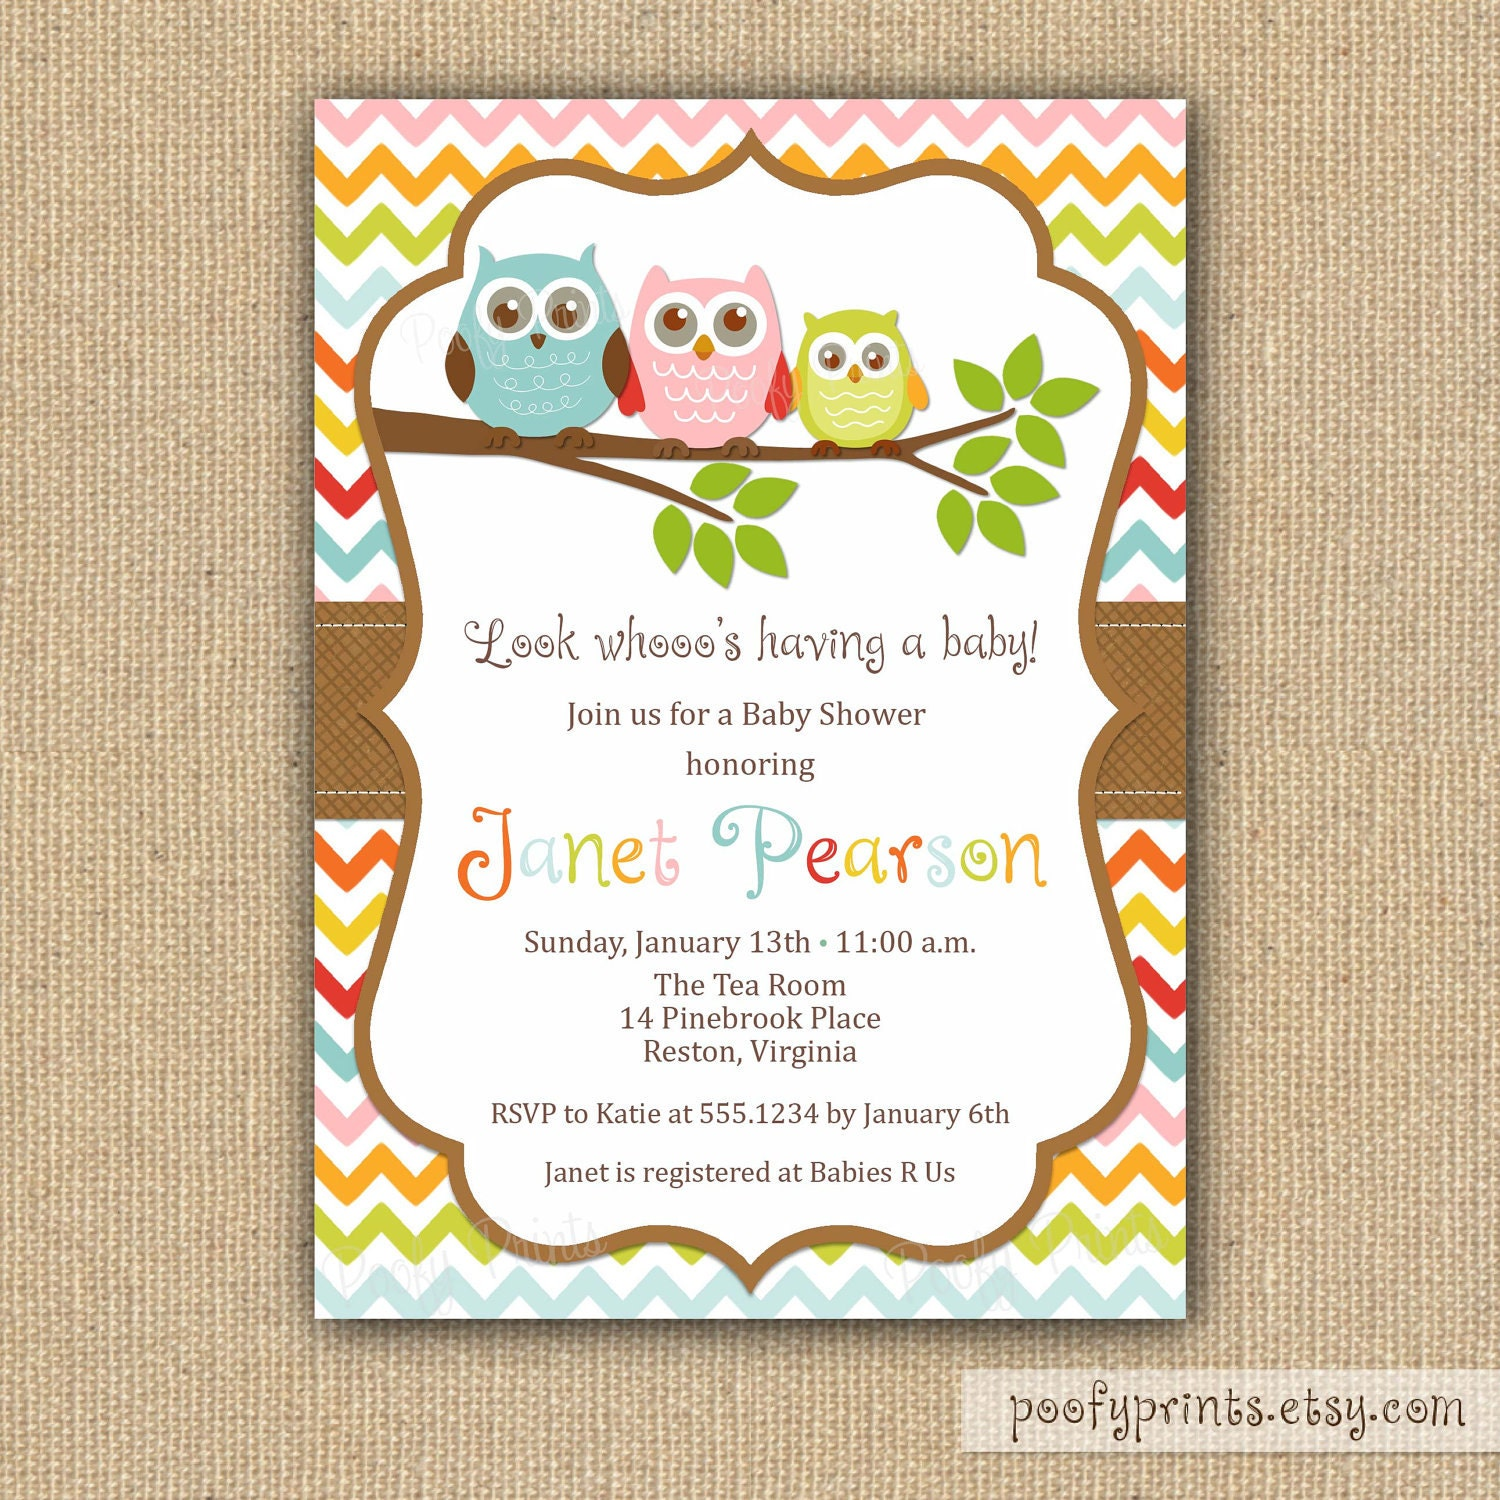 owl baby shower invitations diy printable by poofyprints on etsy